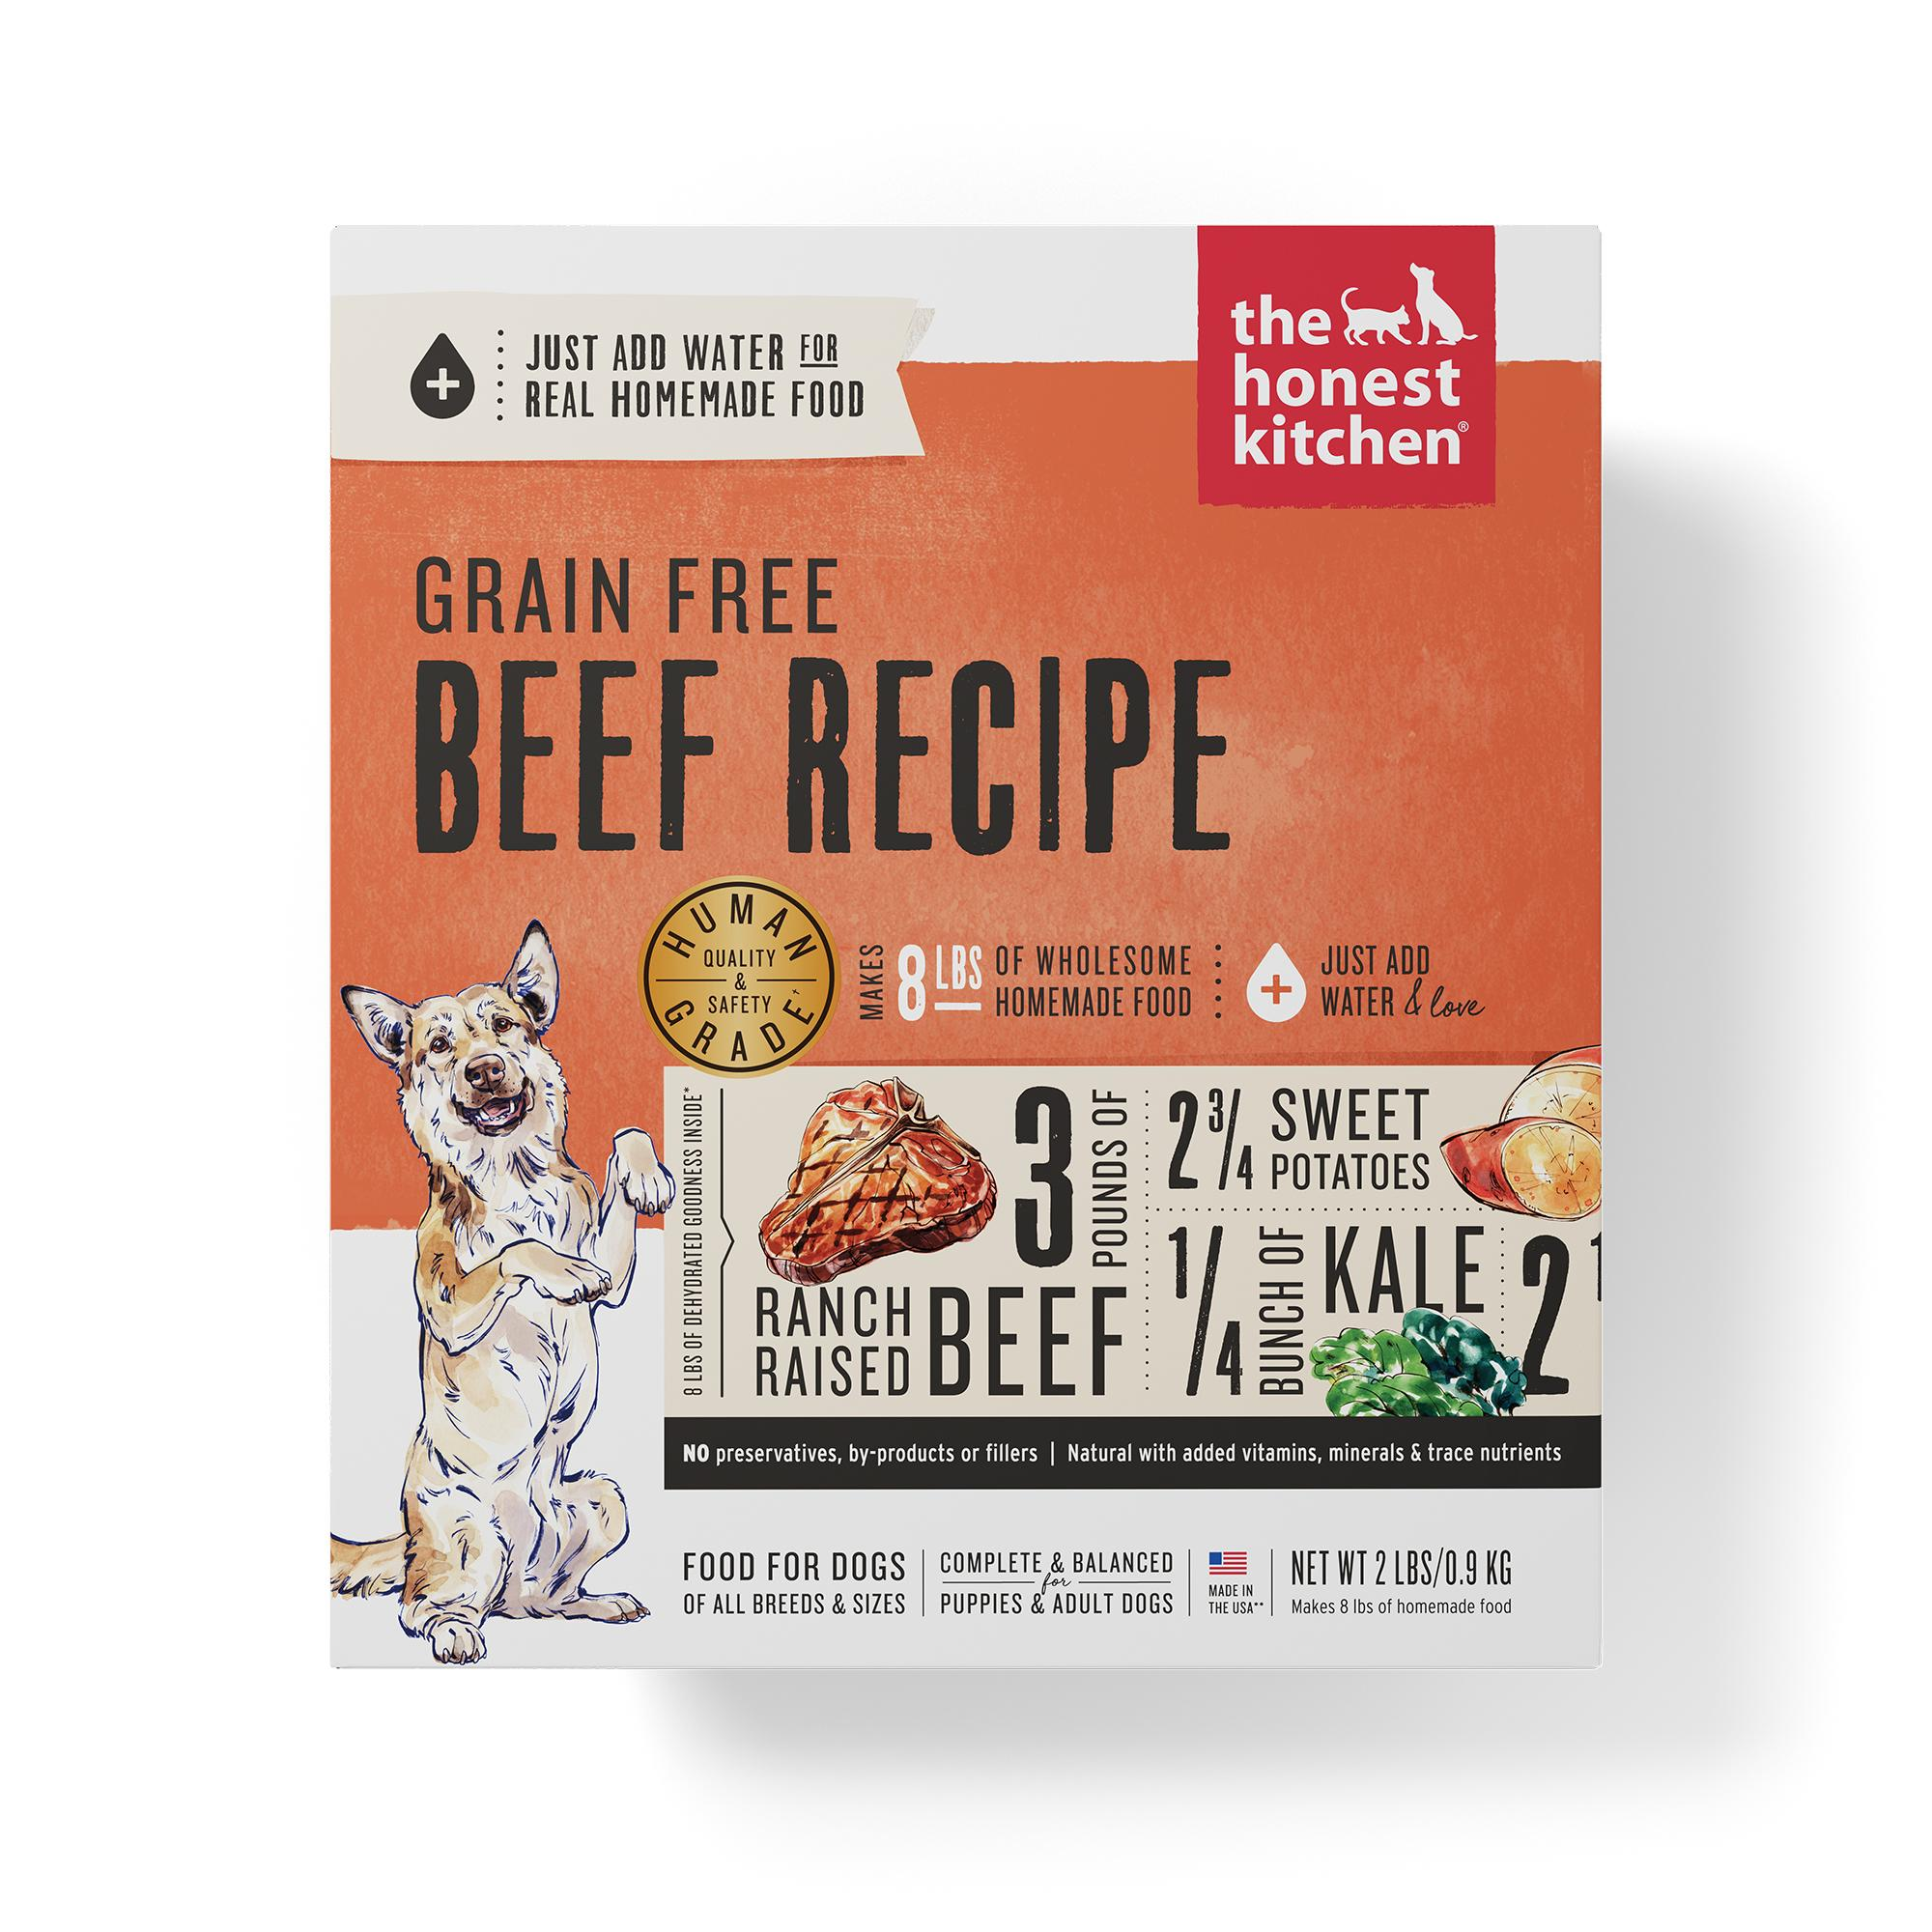 The Honest Kitchen Beef Recipe Grain-Free Dehydrated Dog Food, 2-lb box